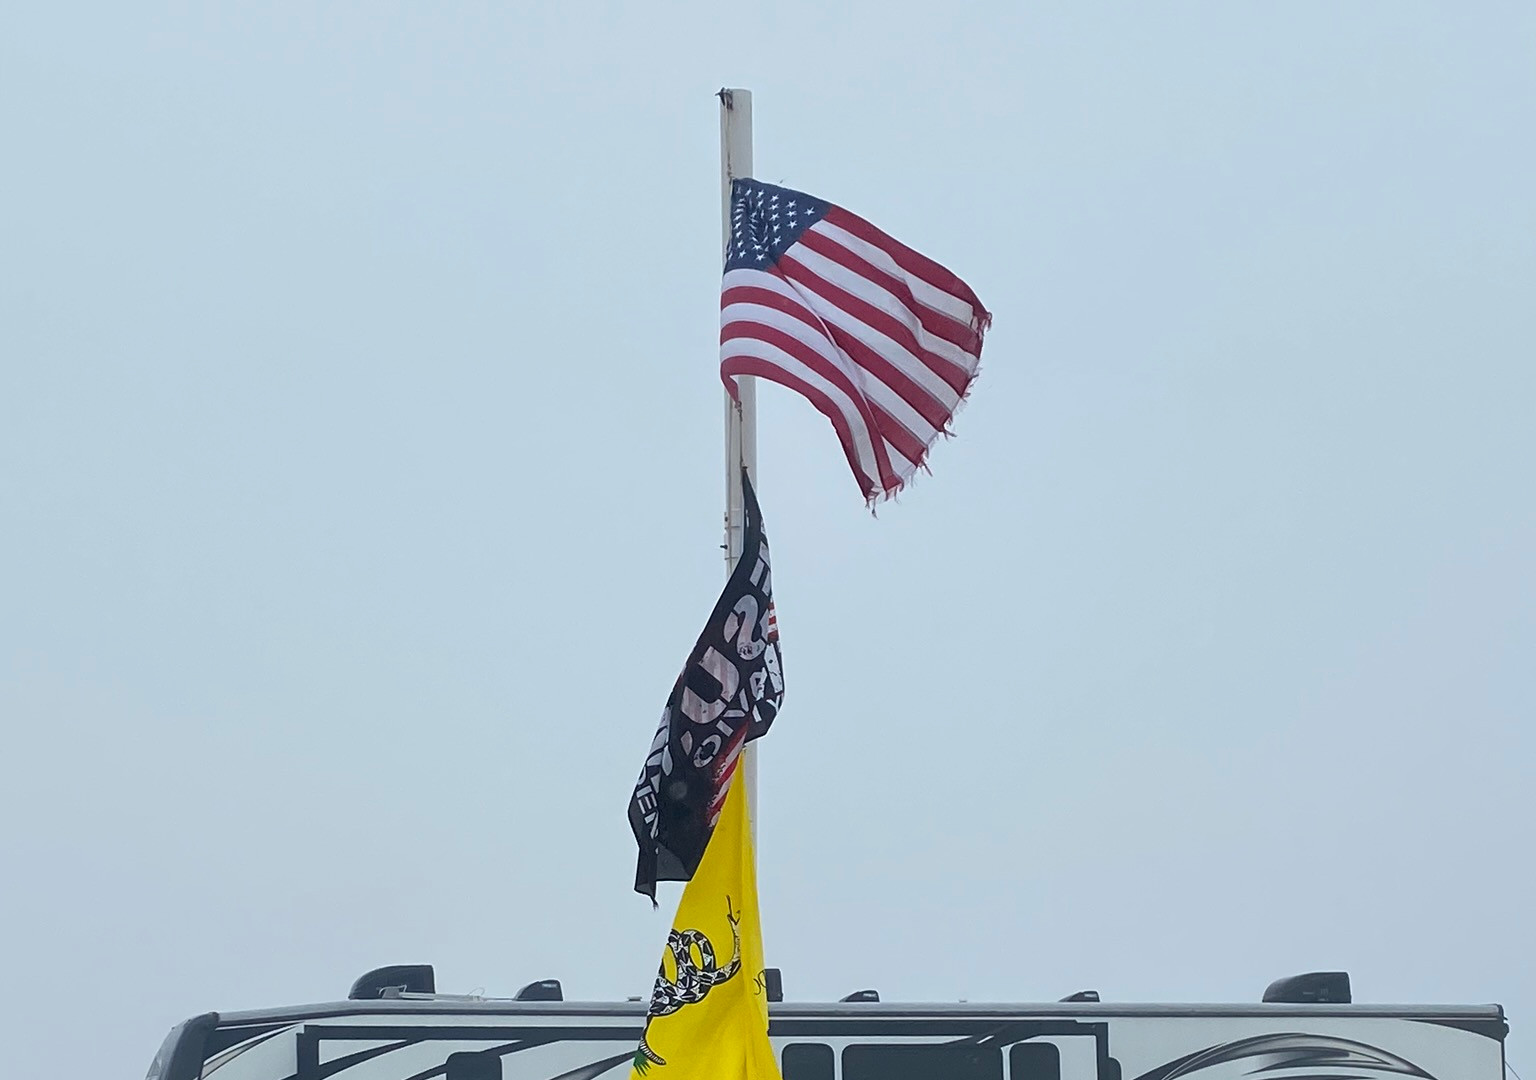 The JProject Flag Pole